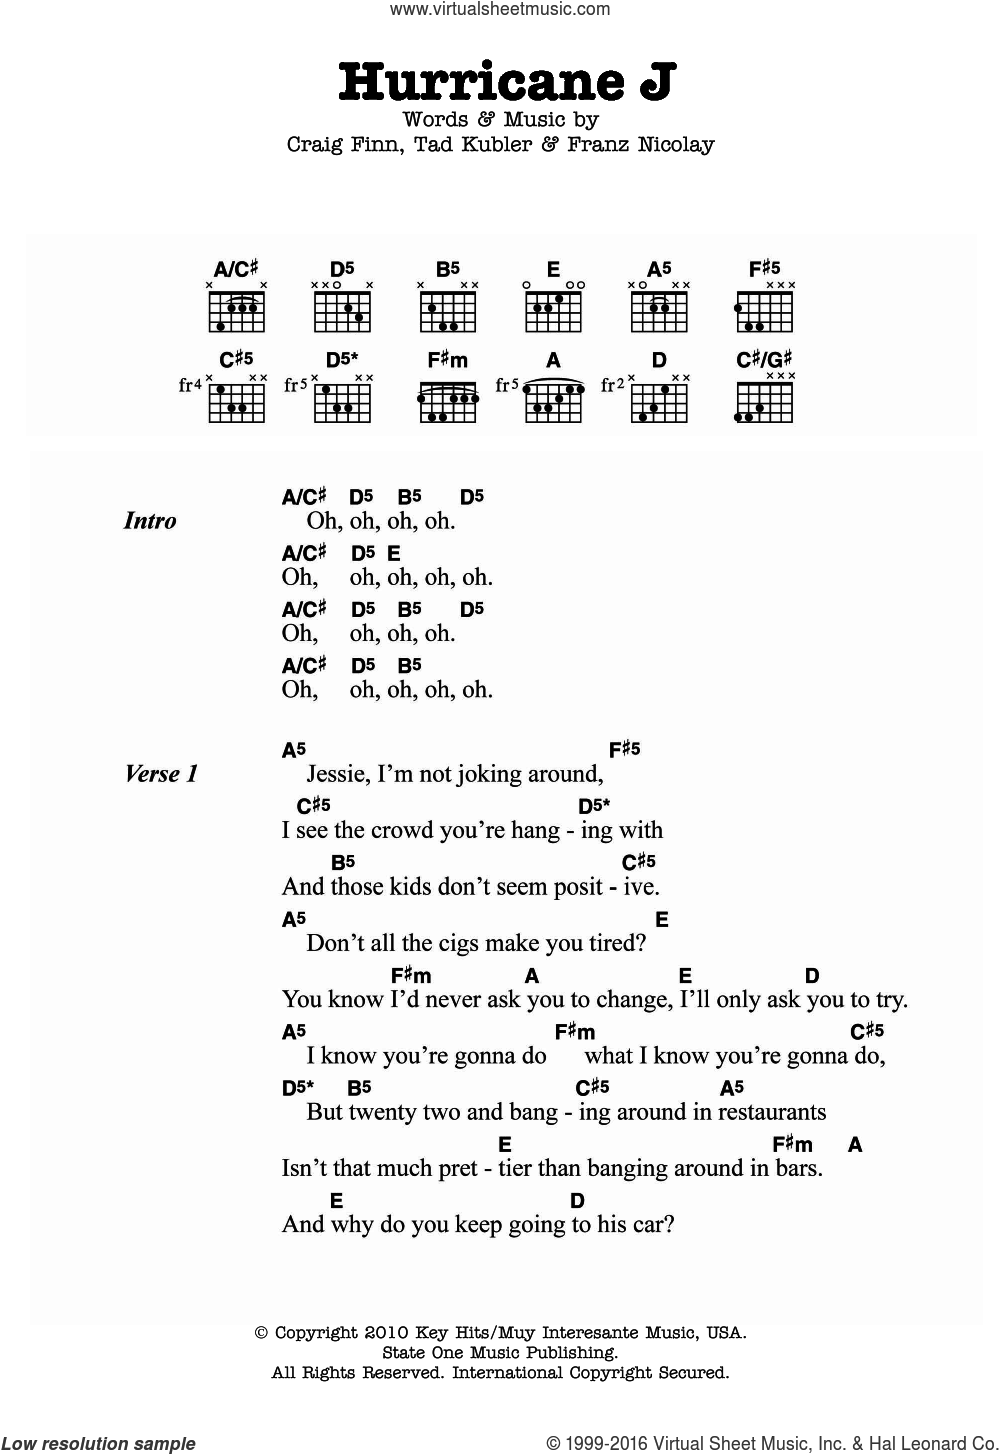 Hurricane J sheet music for guitar (chords) by Tad Kubler, The Hold Steady, Craig Finn and Franz Nicolay. Score Image Preview.